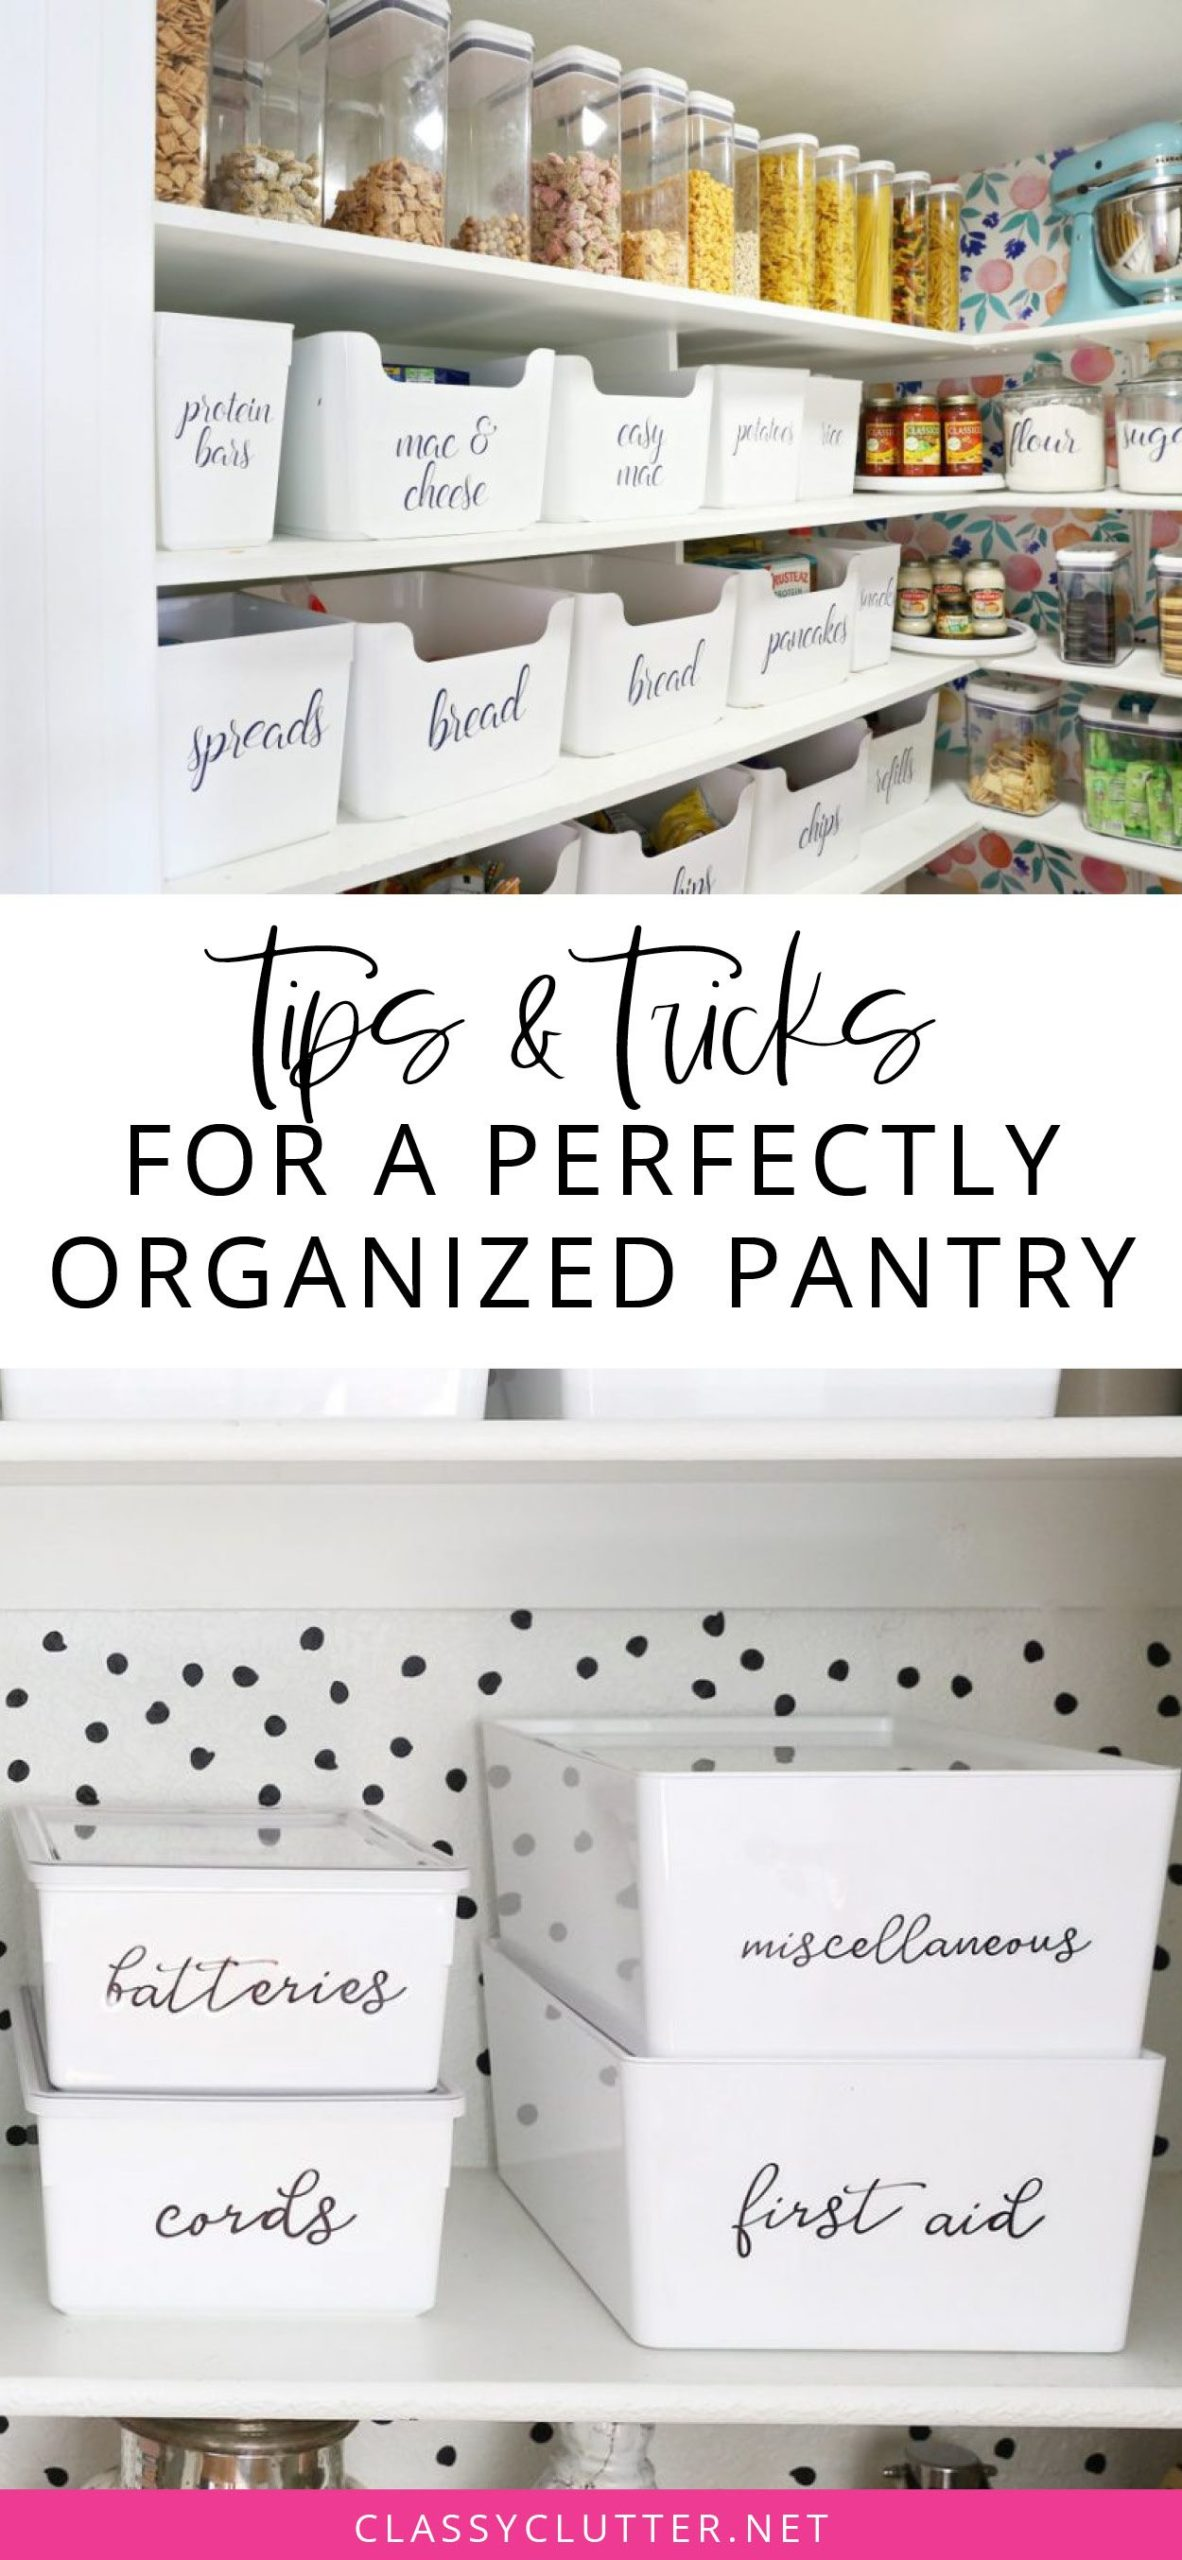 Ikea Kitchen Organization Tips Tricks For A Perfectly Organized Pantry Decor Object Your Daily Dose Of Best Home Decorating Ideas Interior Design Inspiration